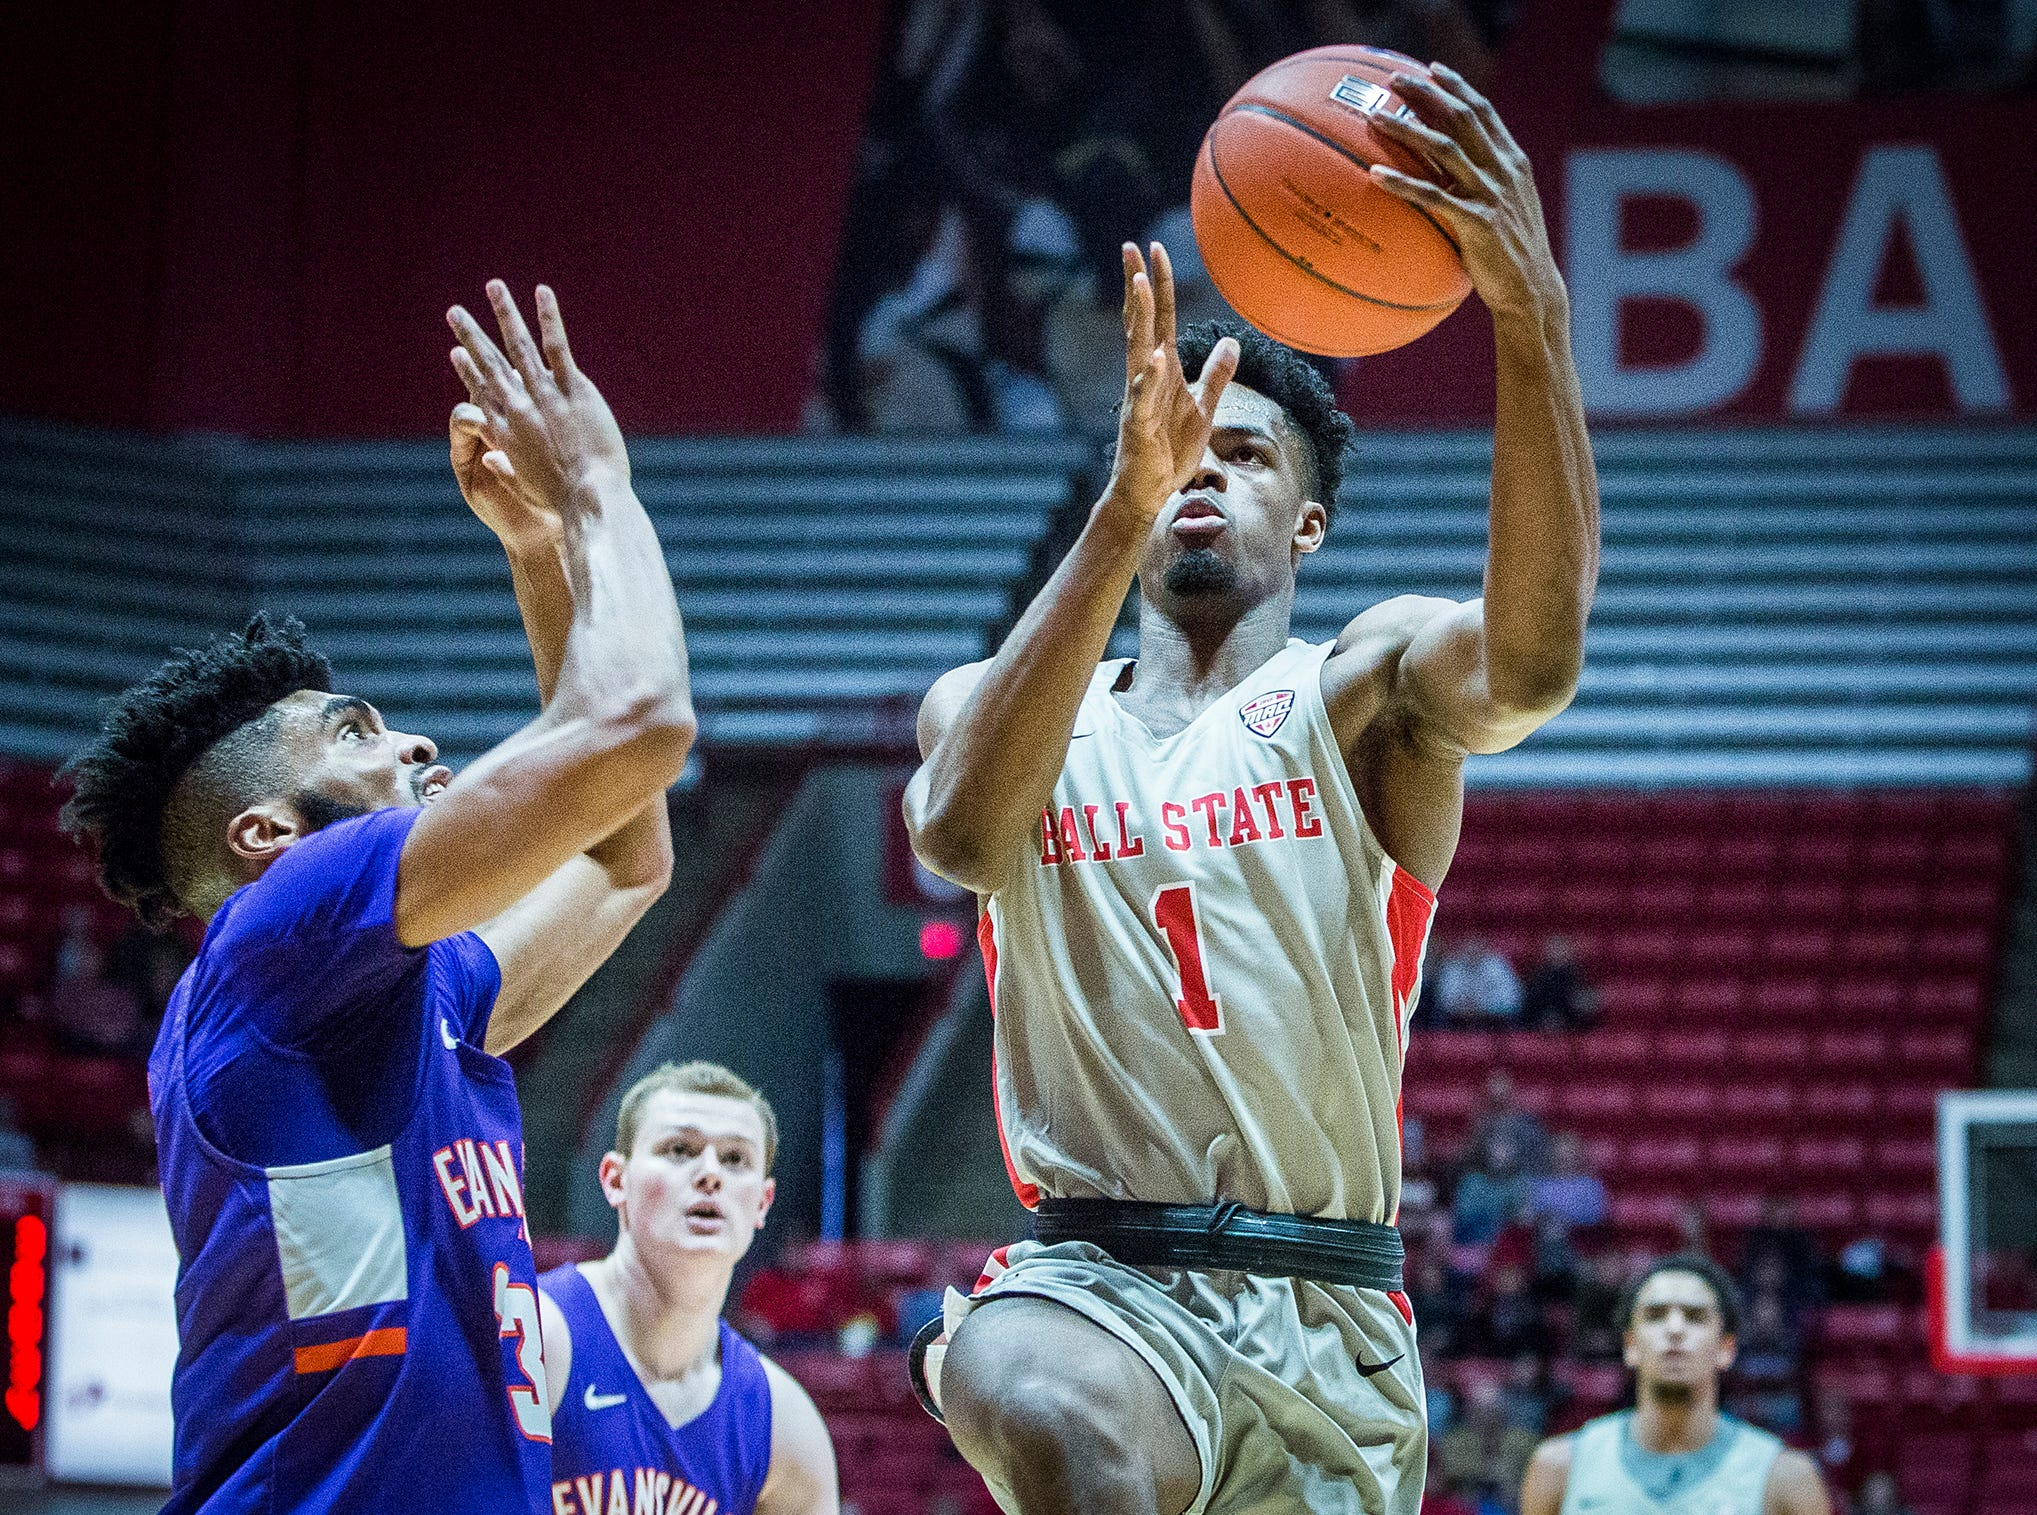 Ball State's K.J. Walton shoots past Evansville's defense during their game at Worthen Arena Saturday, Nov. 24, 2018.